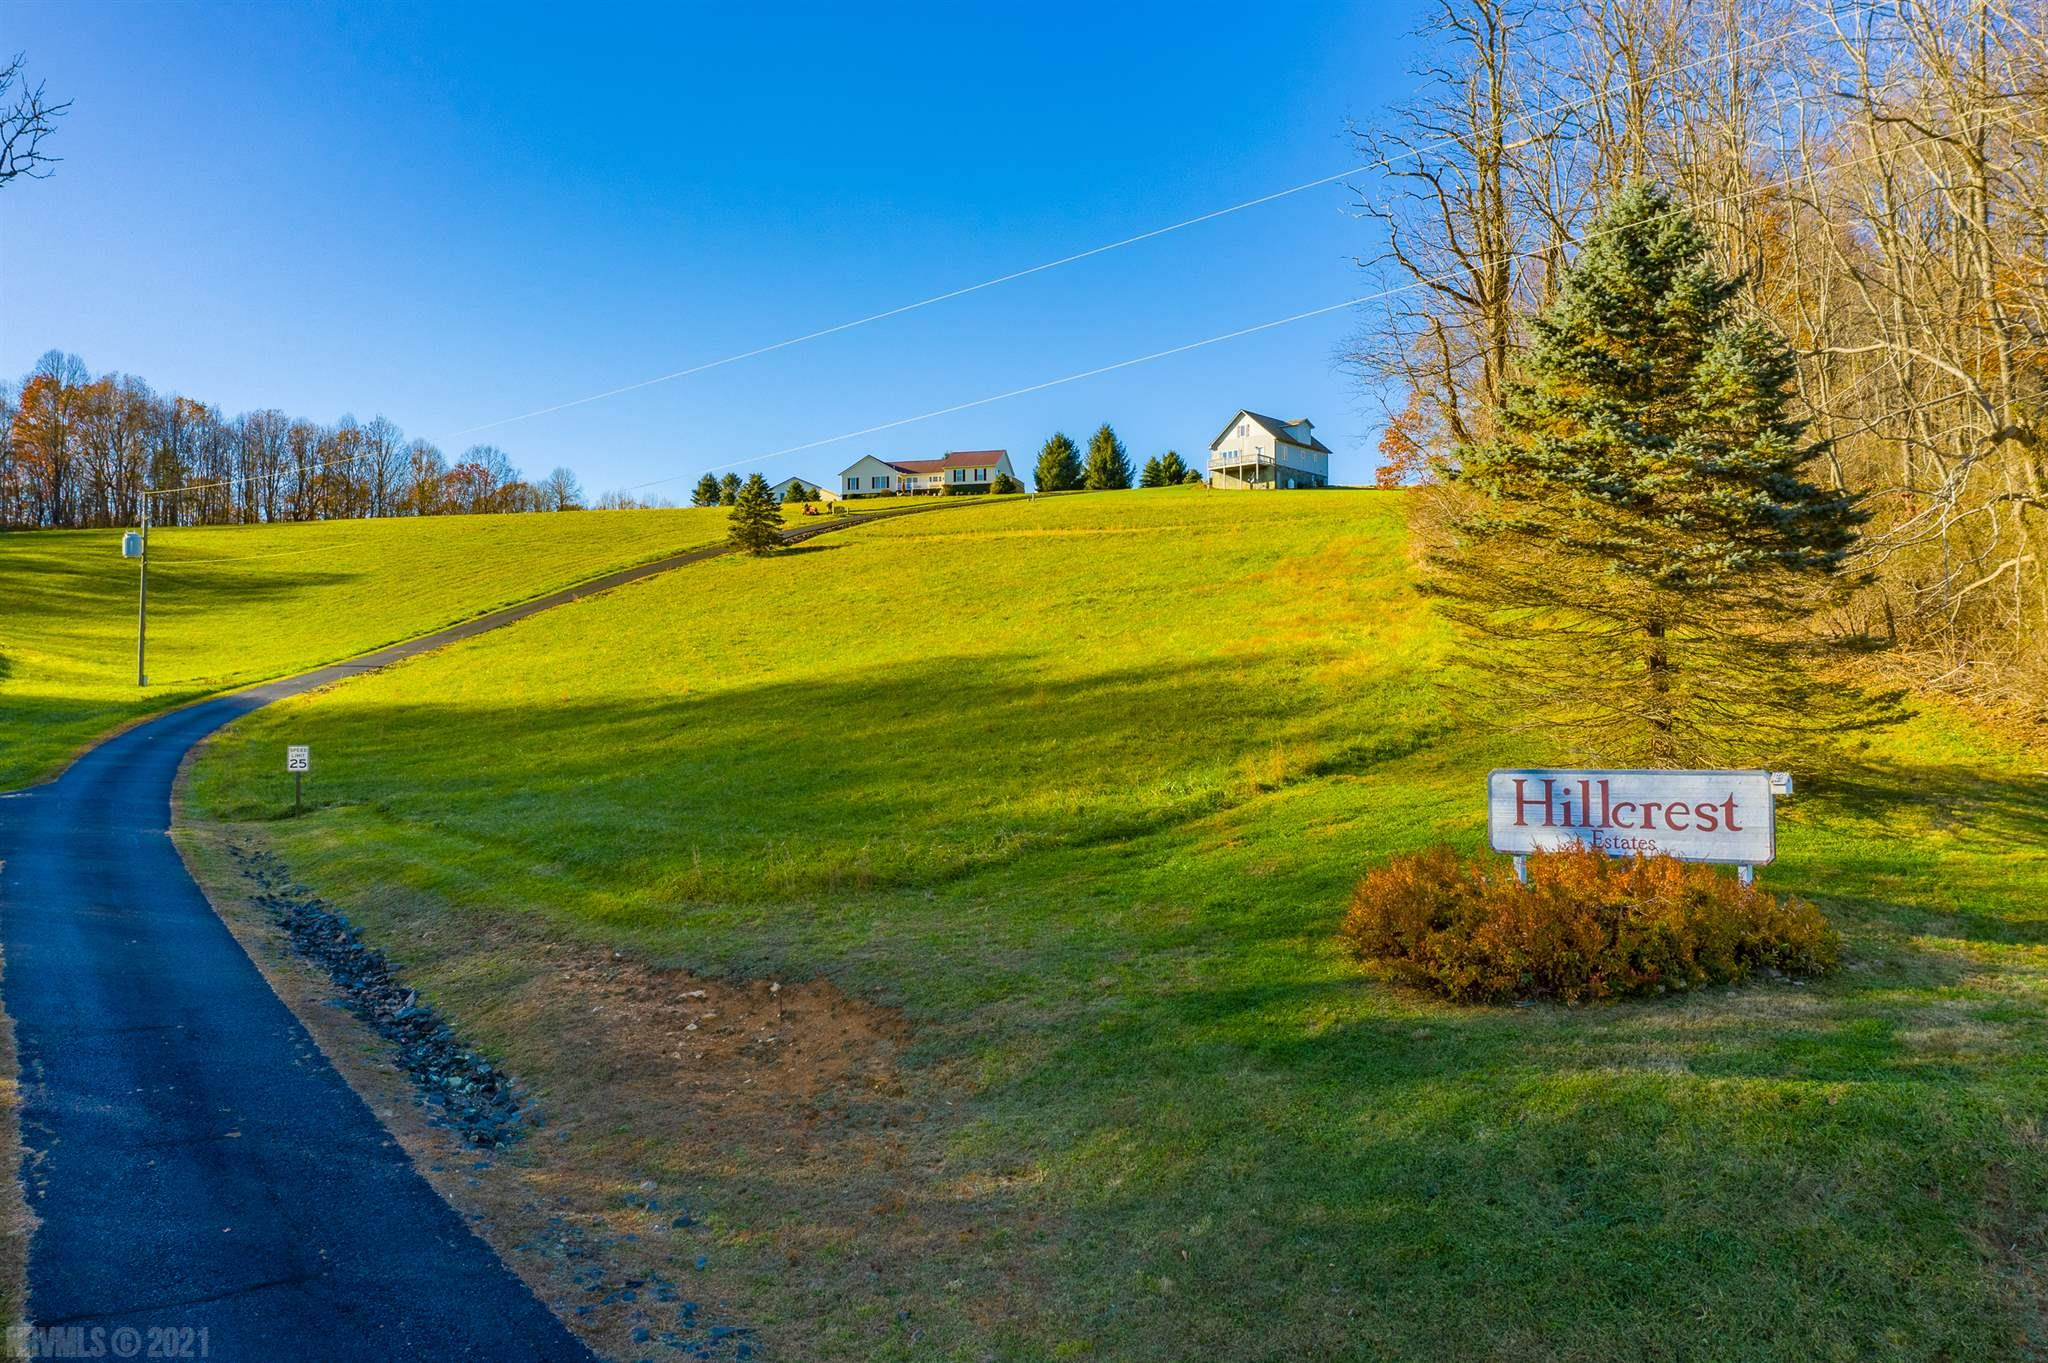 Beautiful and quiet country property located in prestigious Hillcrest Estates overlooking farm and distant view of mountains. Property is cleared with fescue grass ready for building. Community water with the HOA, road maintenance and snow removal. Property offers easy access to Hillsville, Blue Ridge Parkway, one of the best Golf Courses in the country, Olde Mill Golf Resort is just 20 minutes away. A true must see in a simply gorgeous area.  The land was actually originally owned by the Sheriff from the infamous courthouse shooting so you're owning a piece of history, very unique opportunity. Call to make your appt today!!